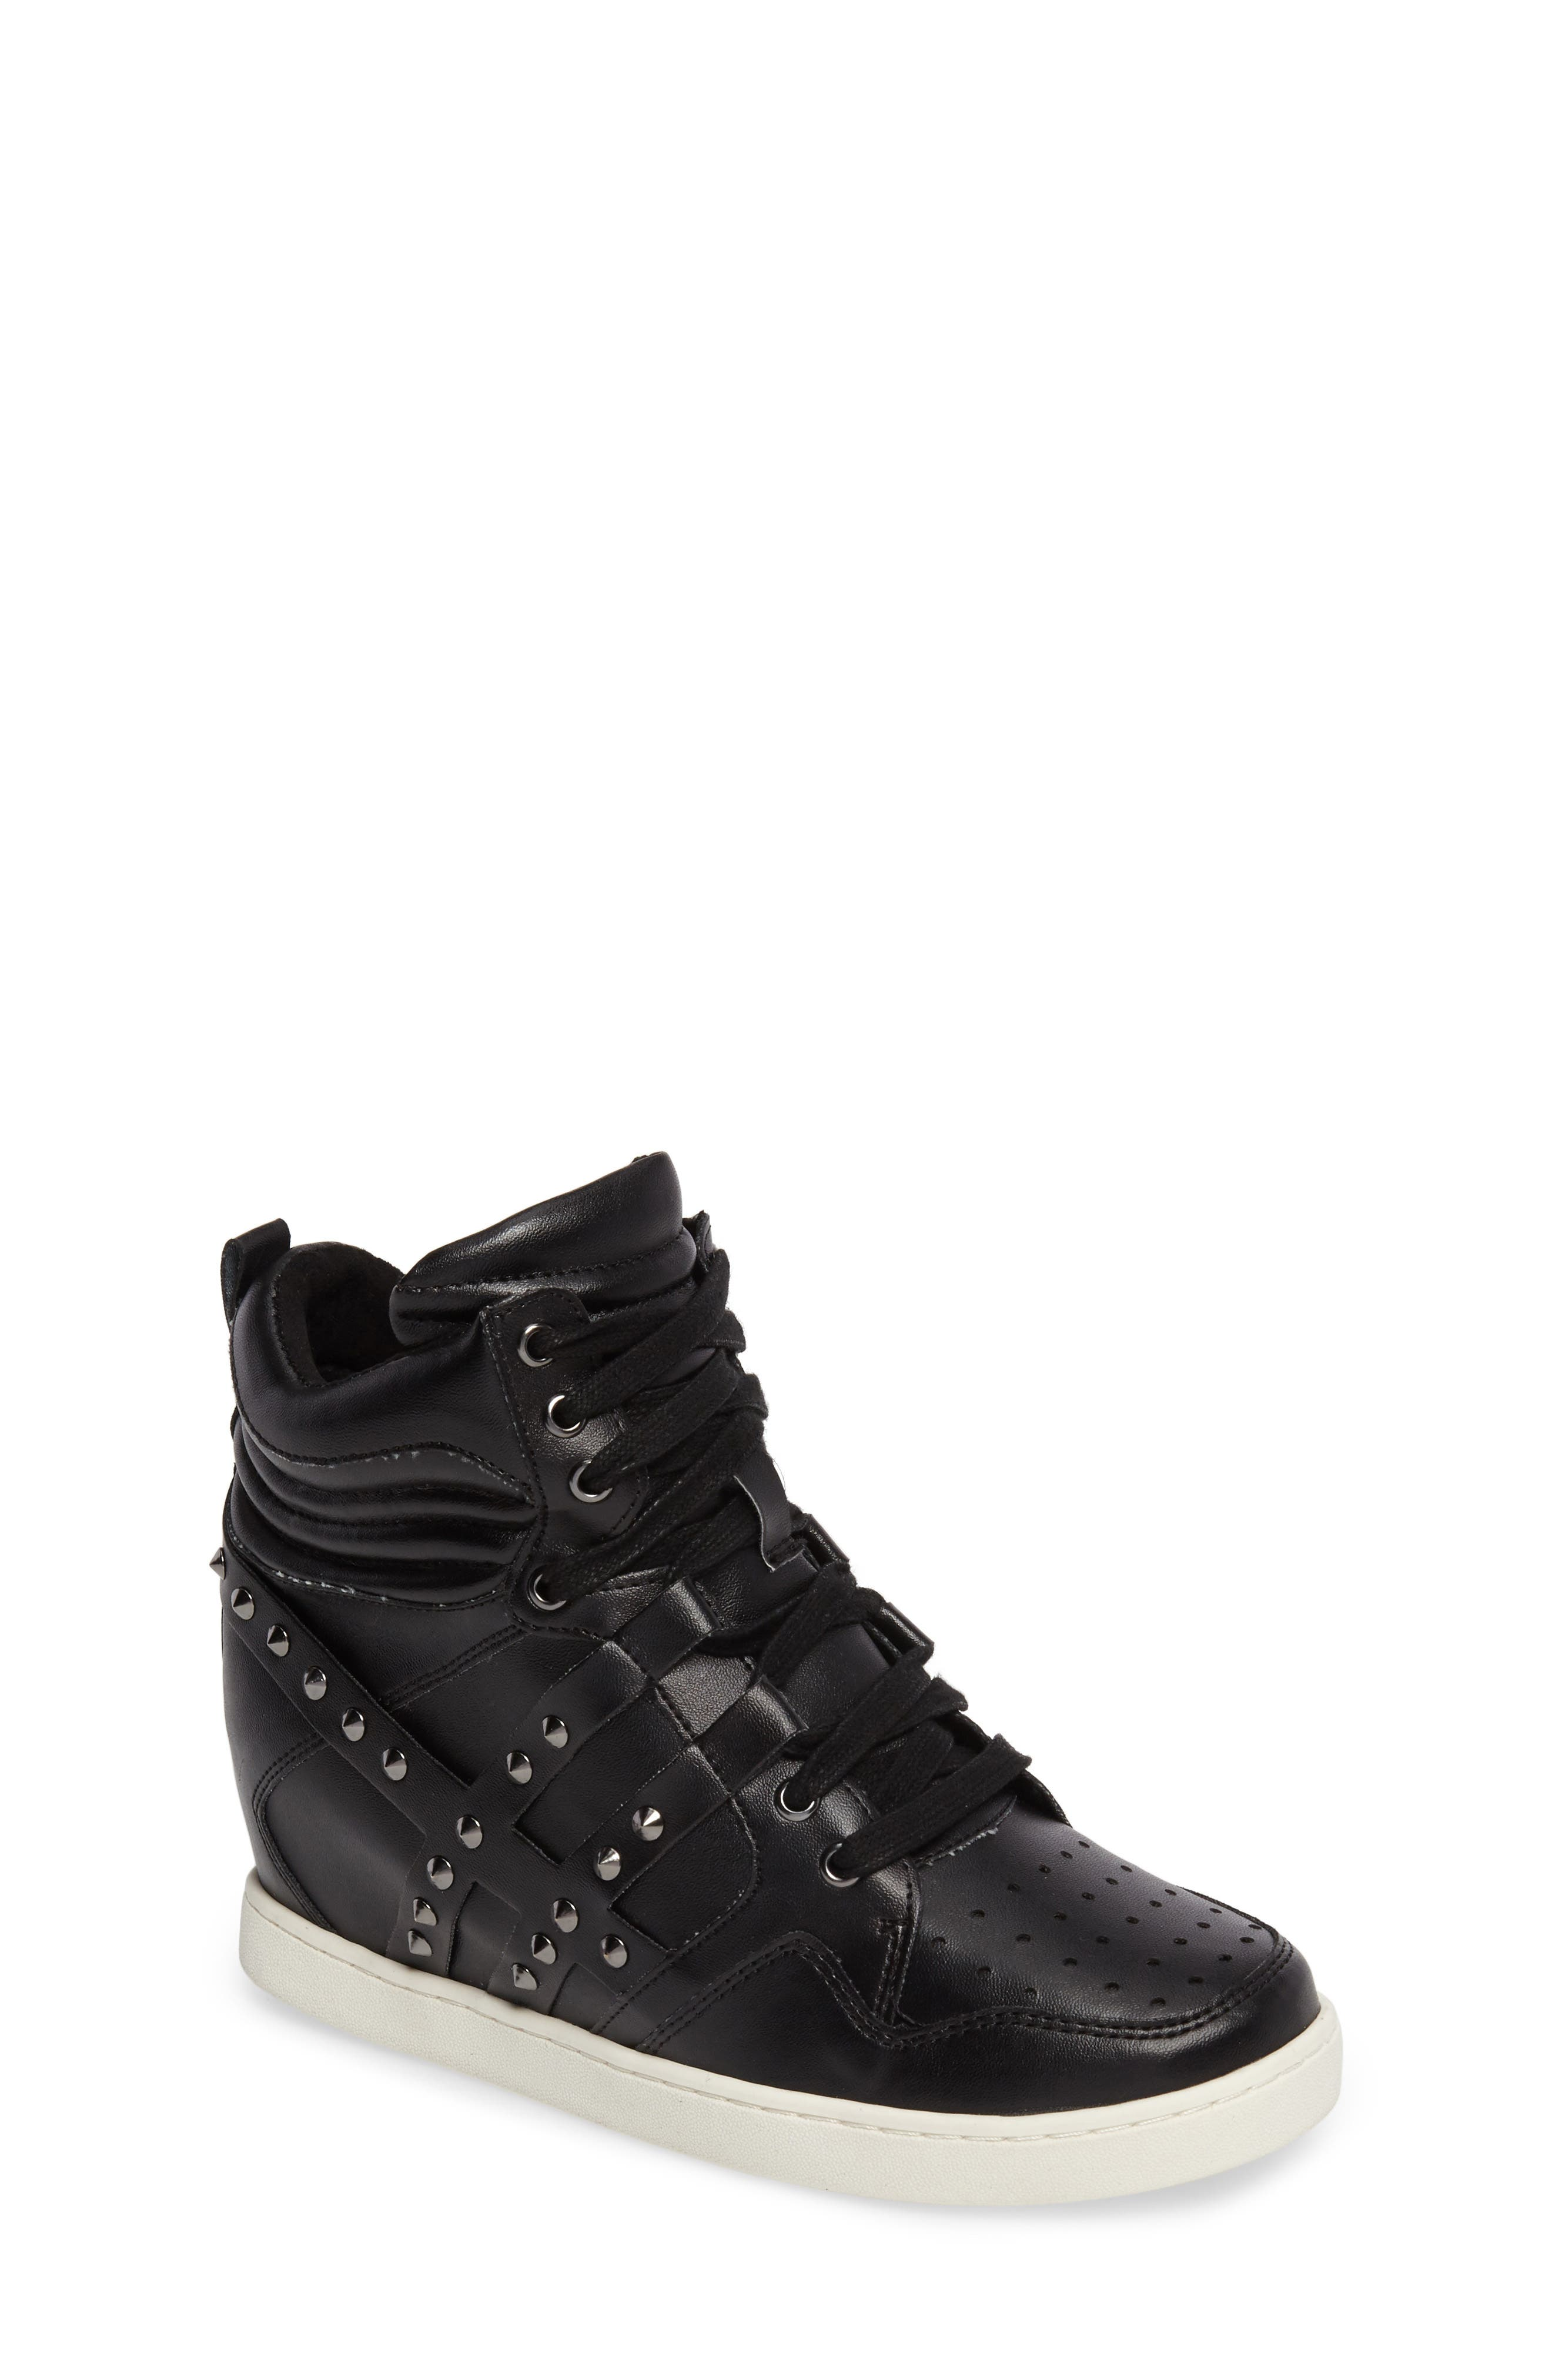 Main Image - Ash Boogie Chic Studded High Top Sneaker (Toddler, Little Kid & Big Kid)